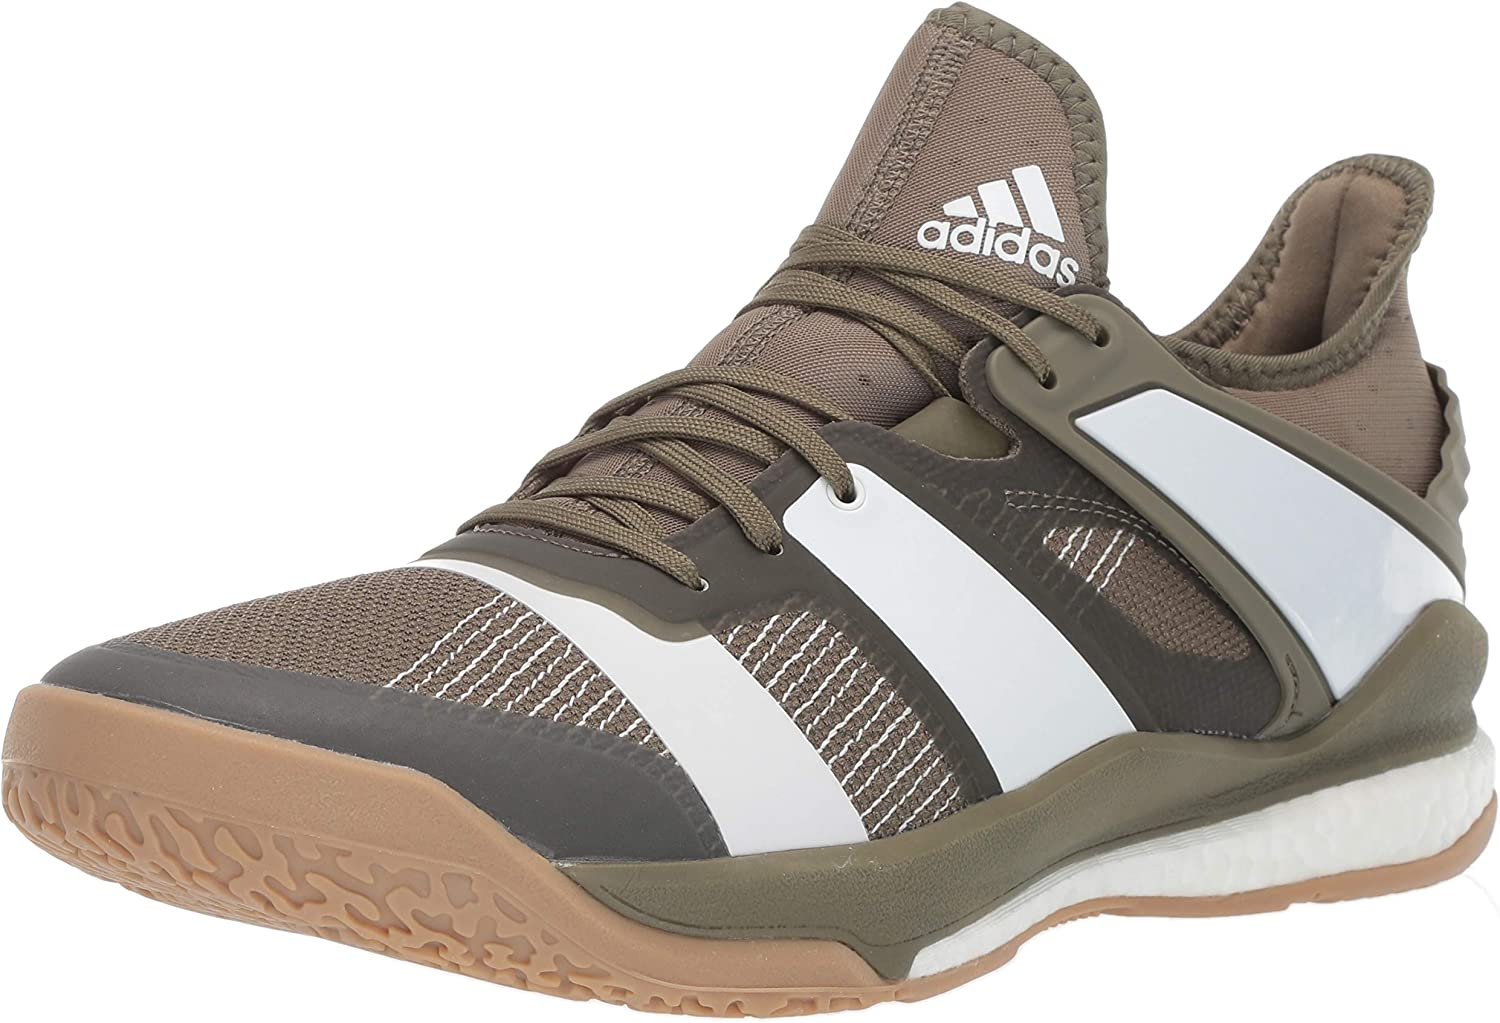 adidas Mens Industry No. Chicago Mall 1 Stabil X Sneakers Casual Shoes Volleyball